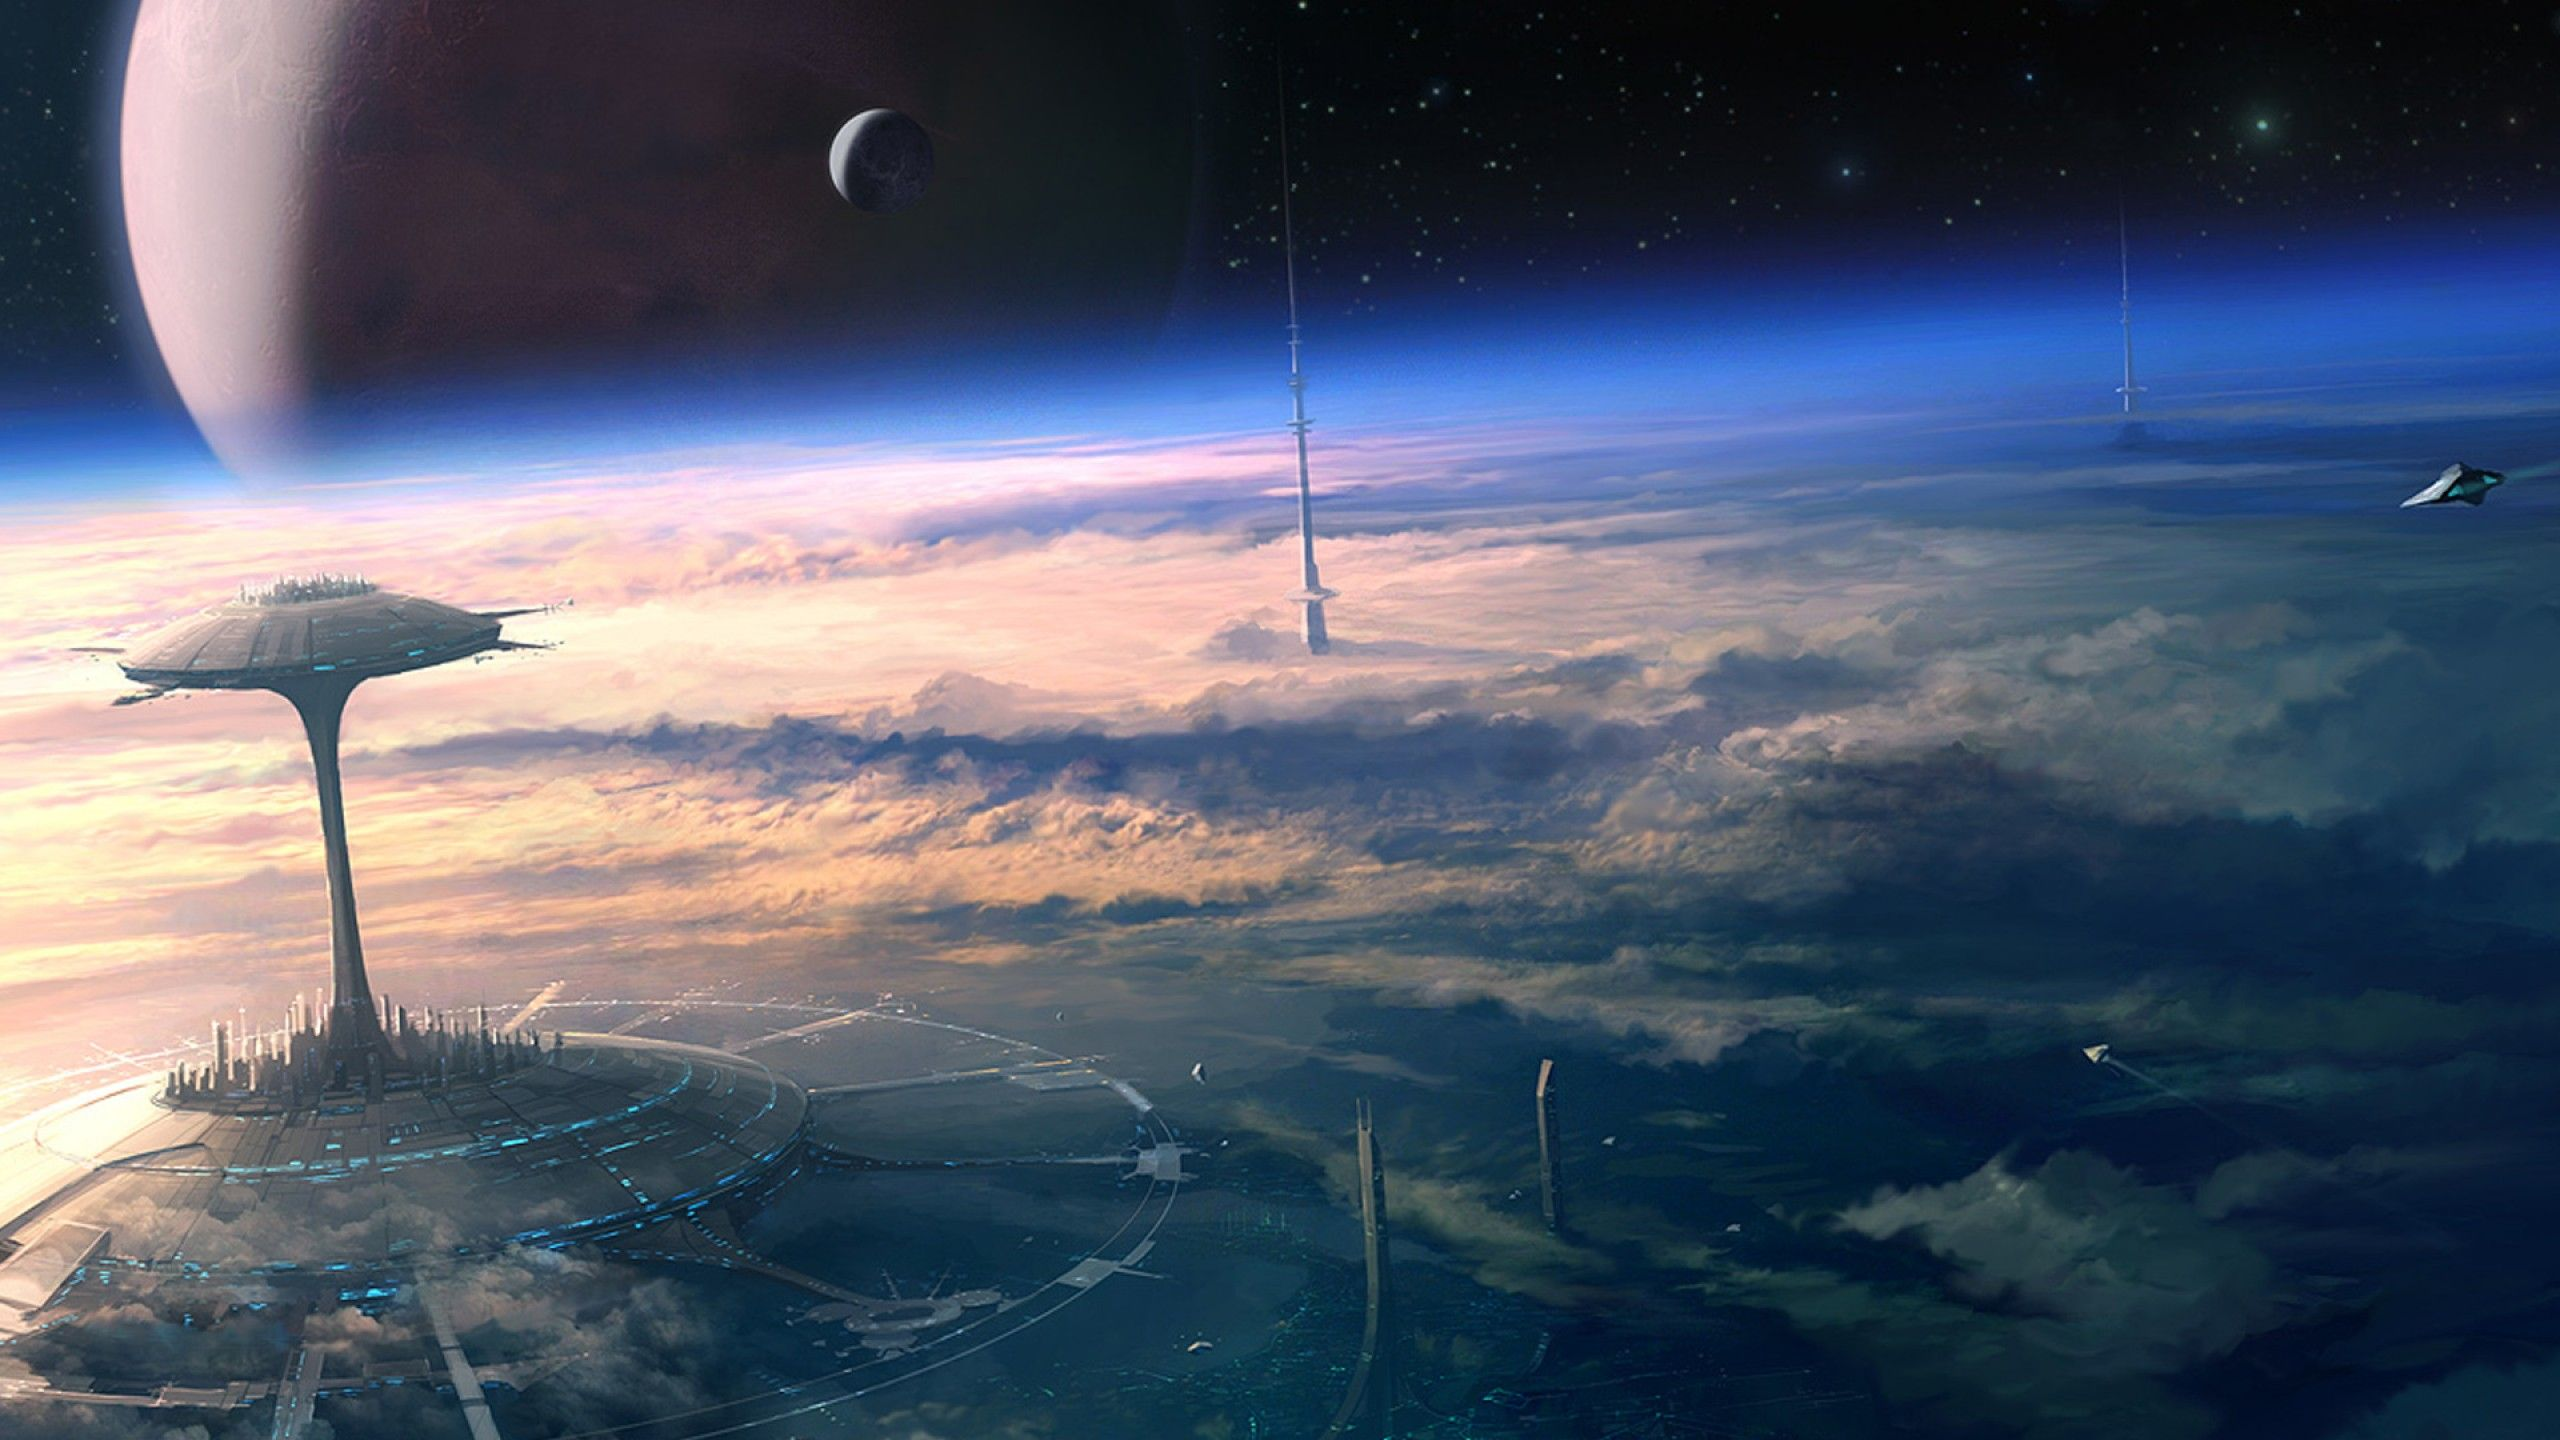 2560x1440 - Sci Fi Place Wallpapers 29